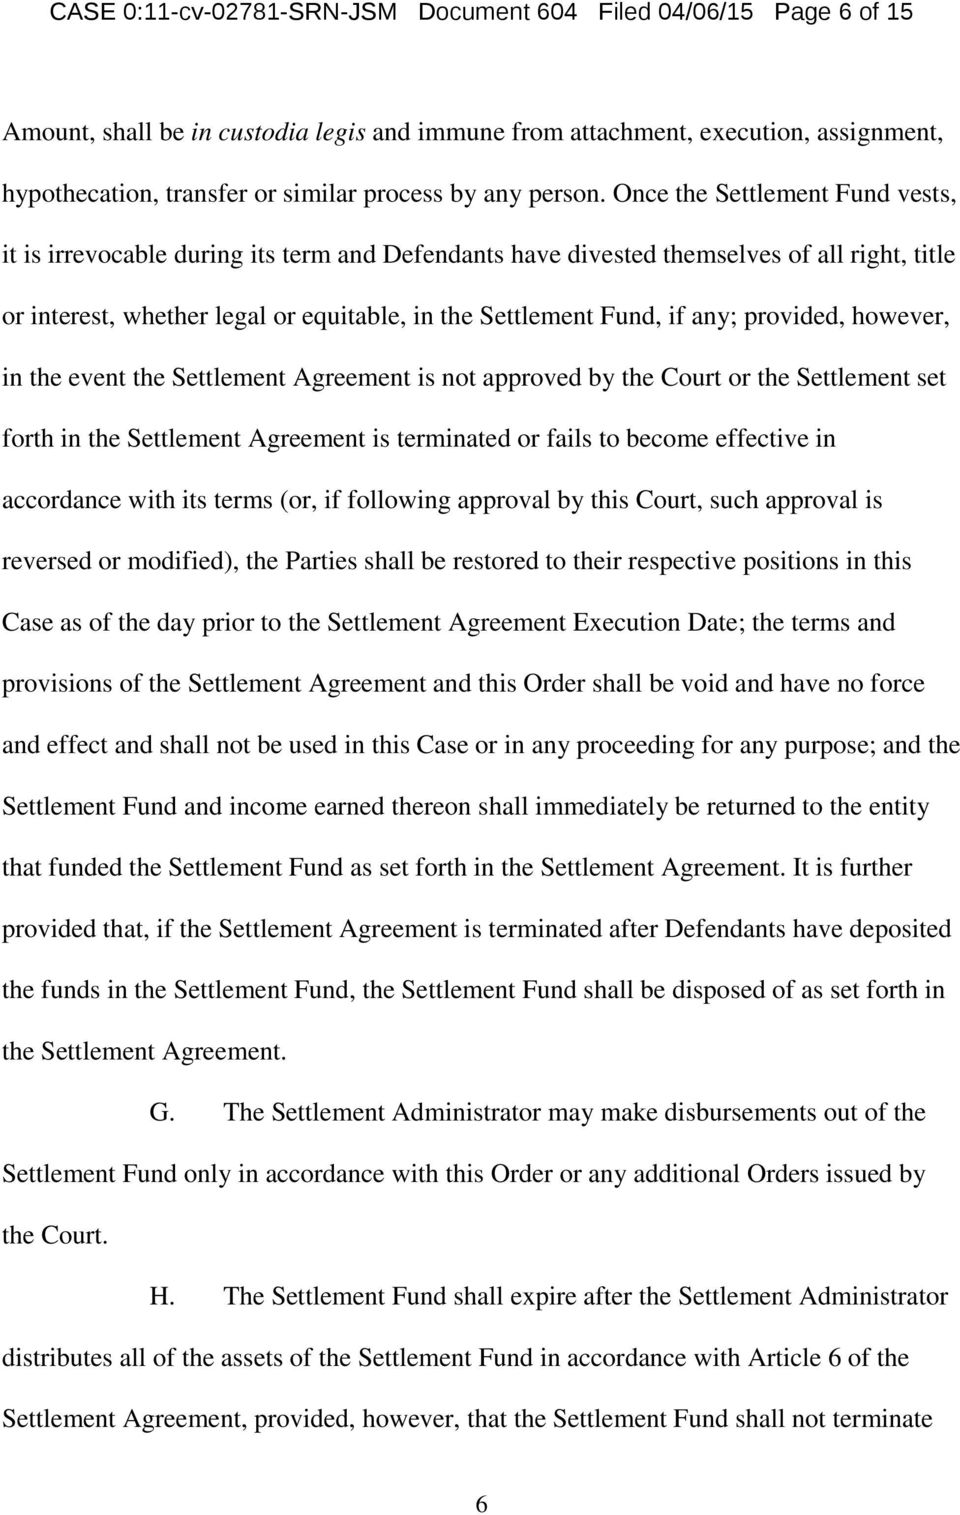 Once the Settlement Fund vests, it is irrevocable during its term and Defendants have divested themselves of all right, title or interest, whether legal or equitable, in the Settlement Fund, if any;